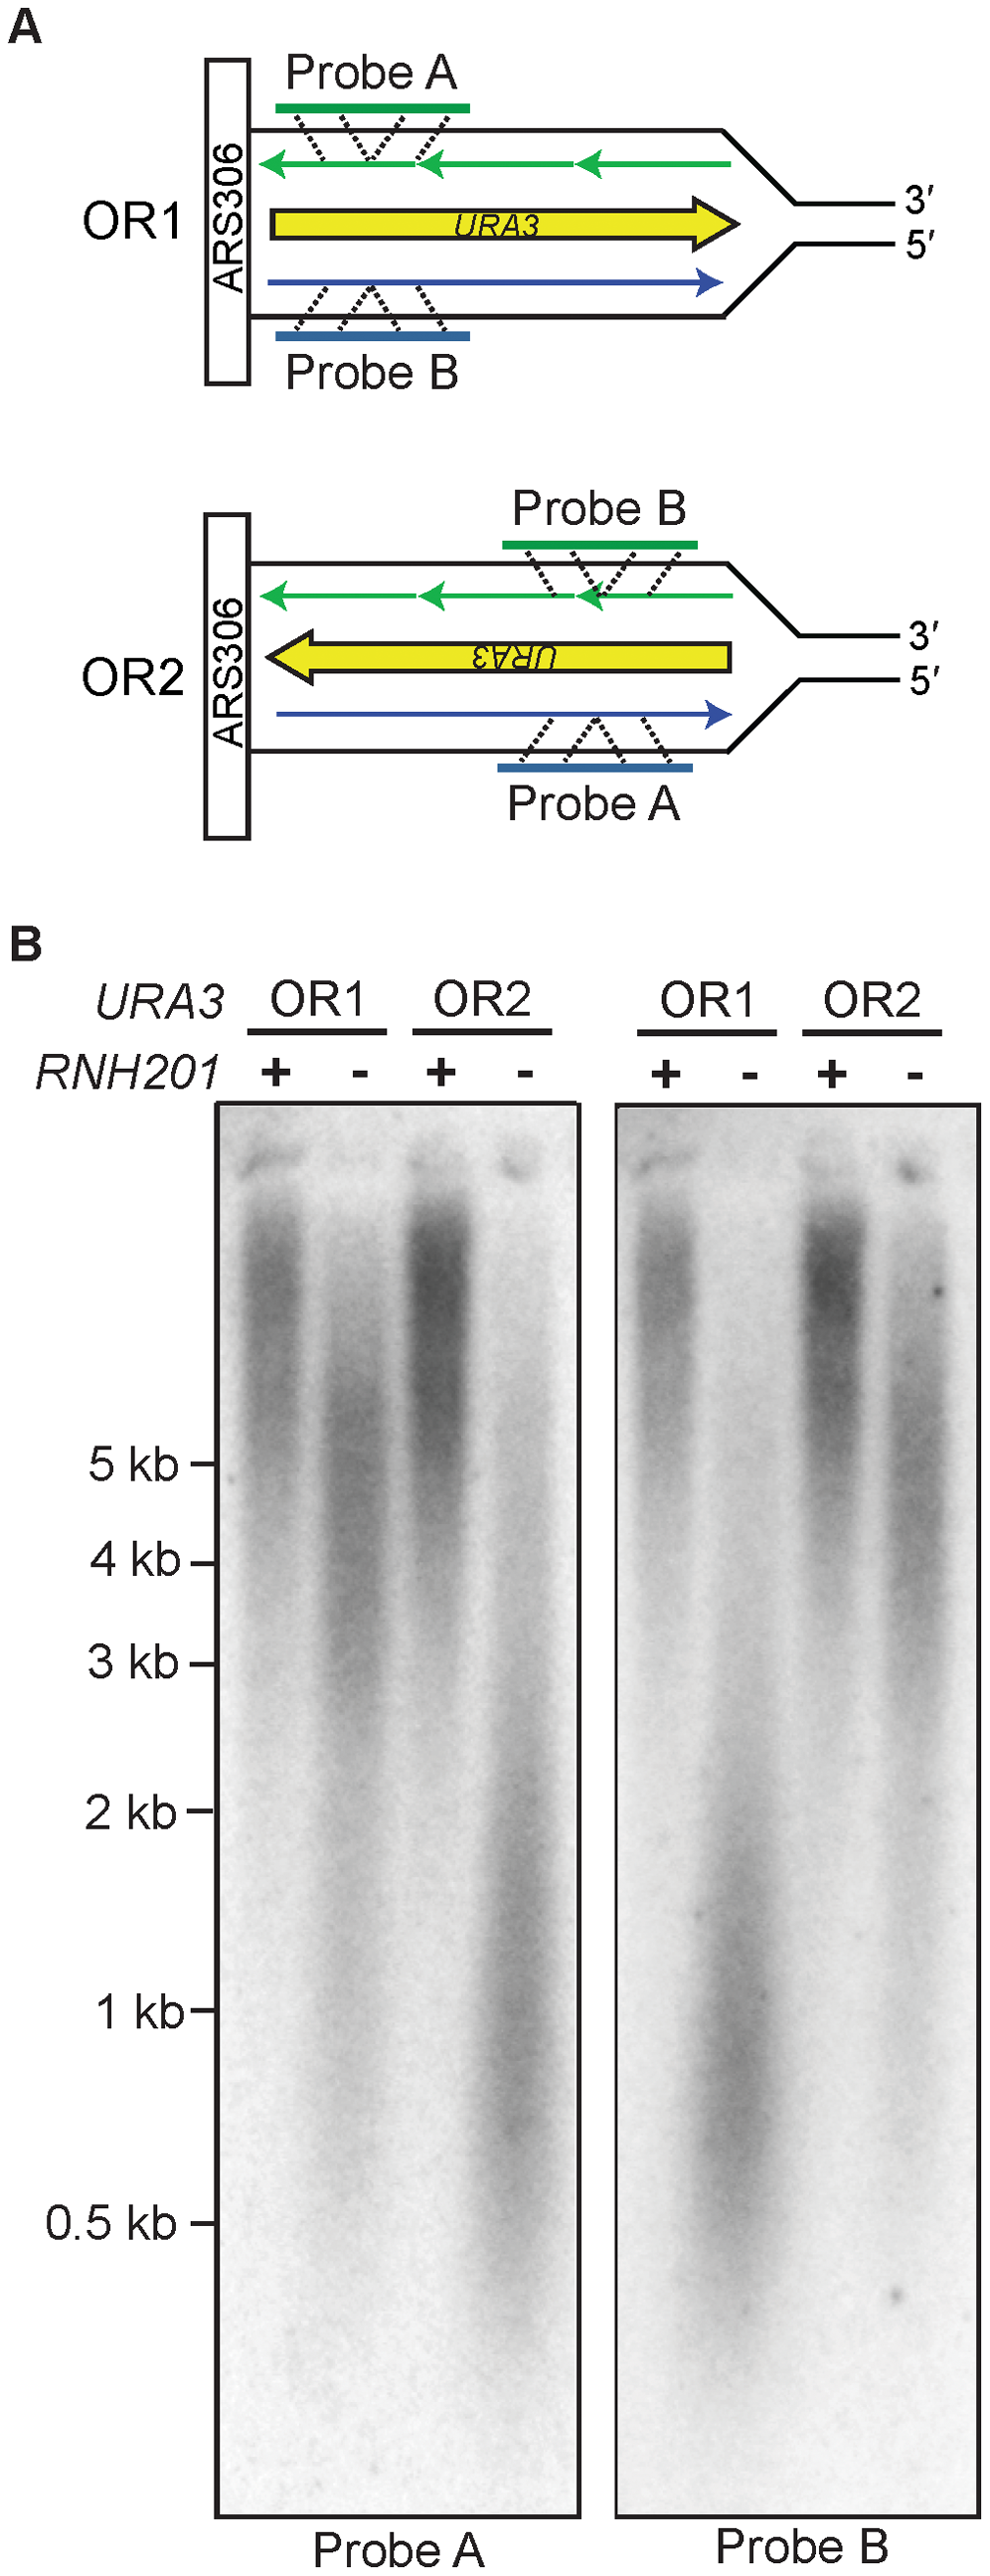 Strand-specific incorporation of rNMPs into genomic DNA.